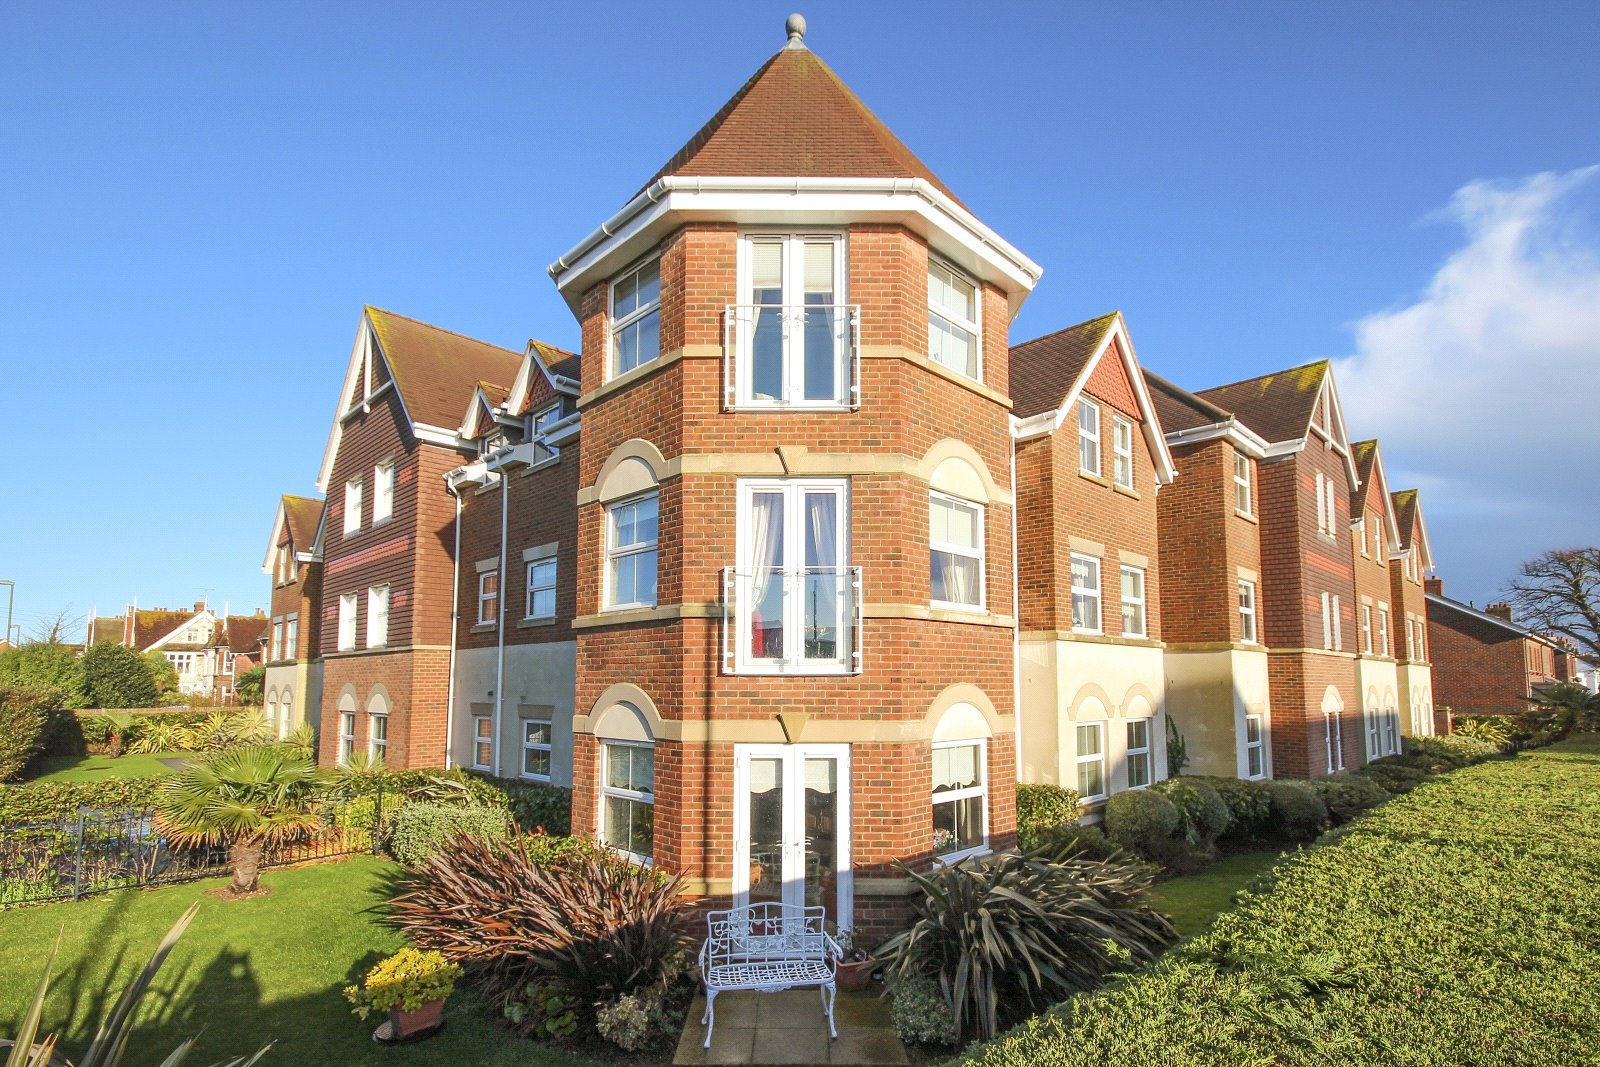 2 bed apartment for sale in East Preston, Tamarisk, 1 Manor Road, BN16 1FE  - Property Image 1